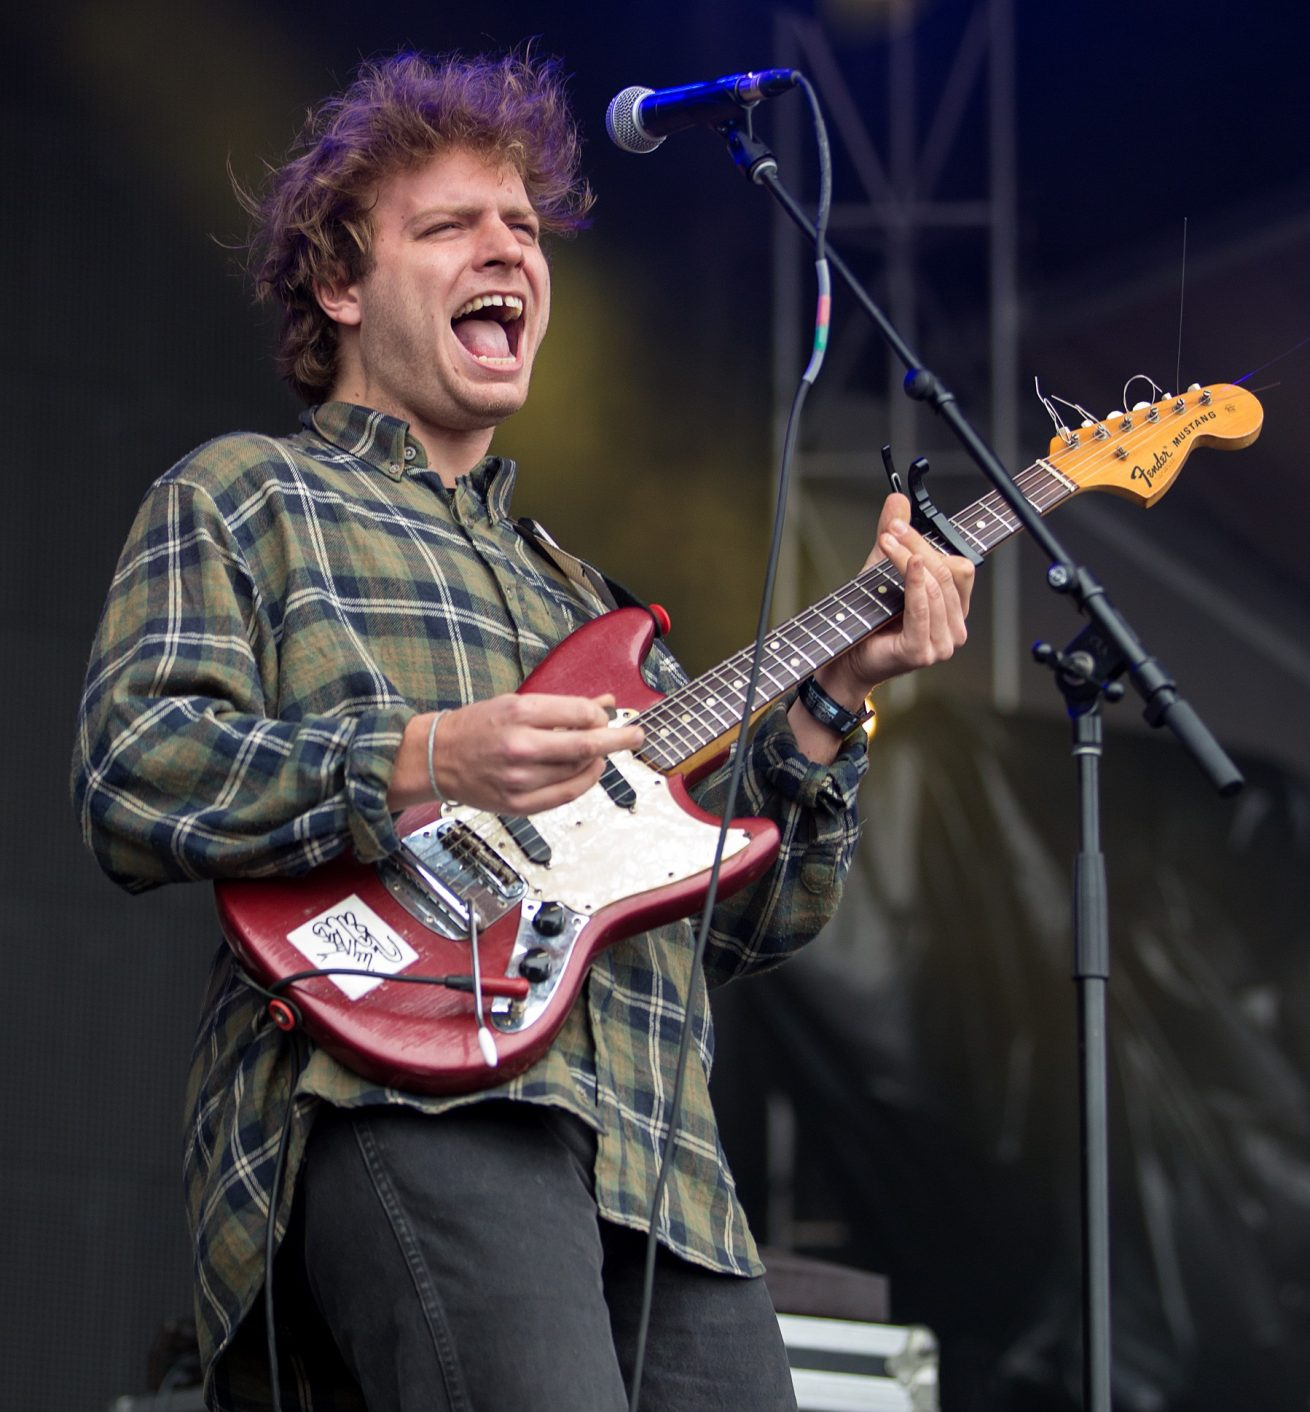 mac demarco'dan christmas özel cover'ı